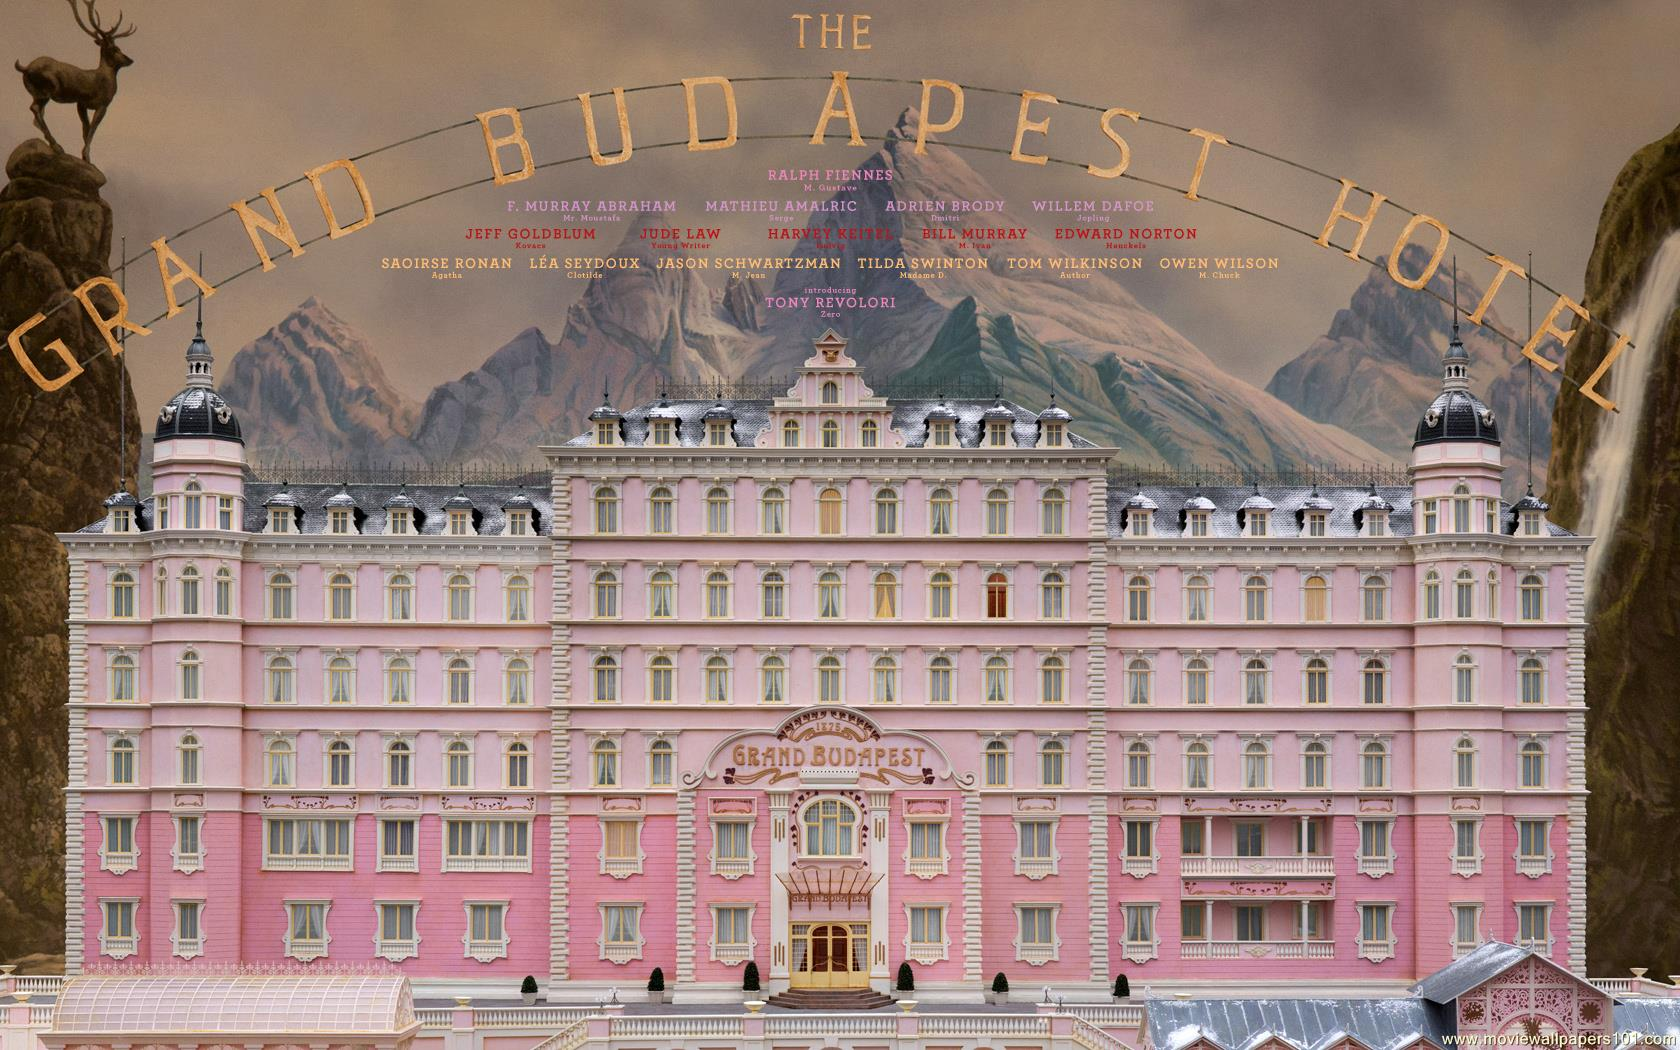 Front of the pink Grand Budapest Hotel with mountain backdrop and title from the film